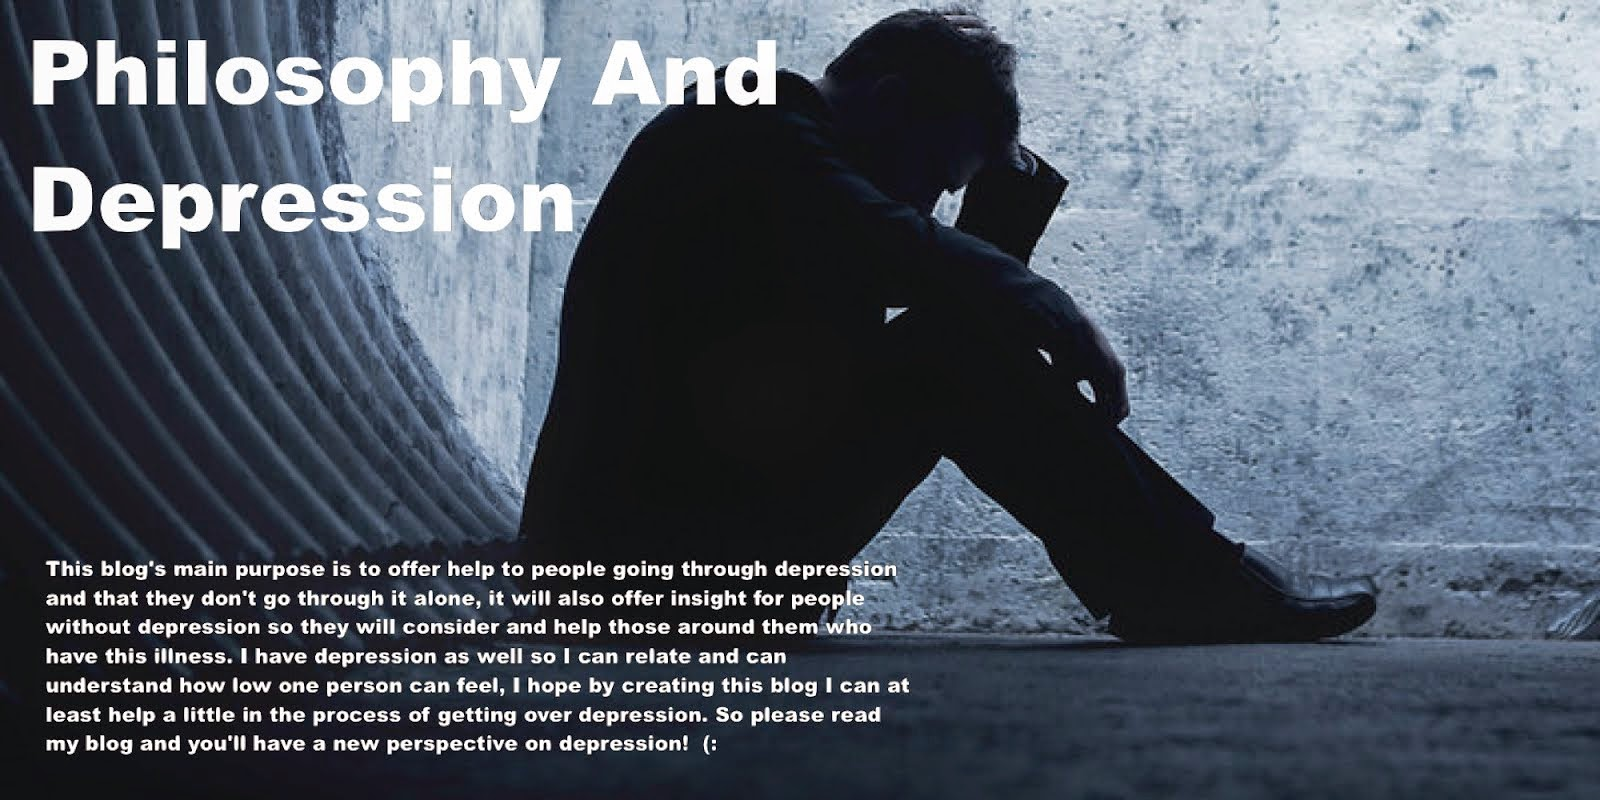 philosophy and depression: helping someone with depression